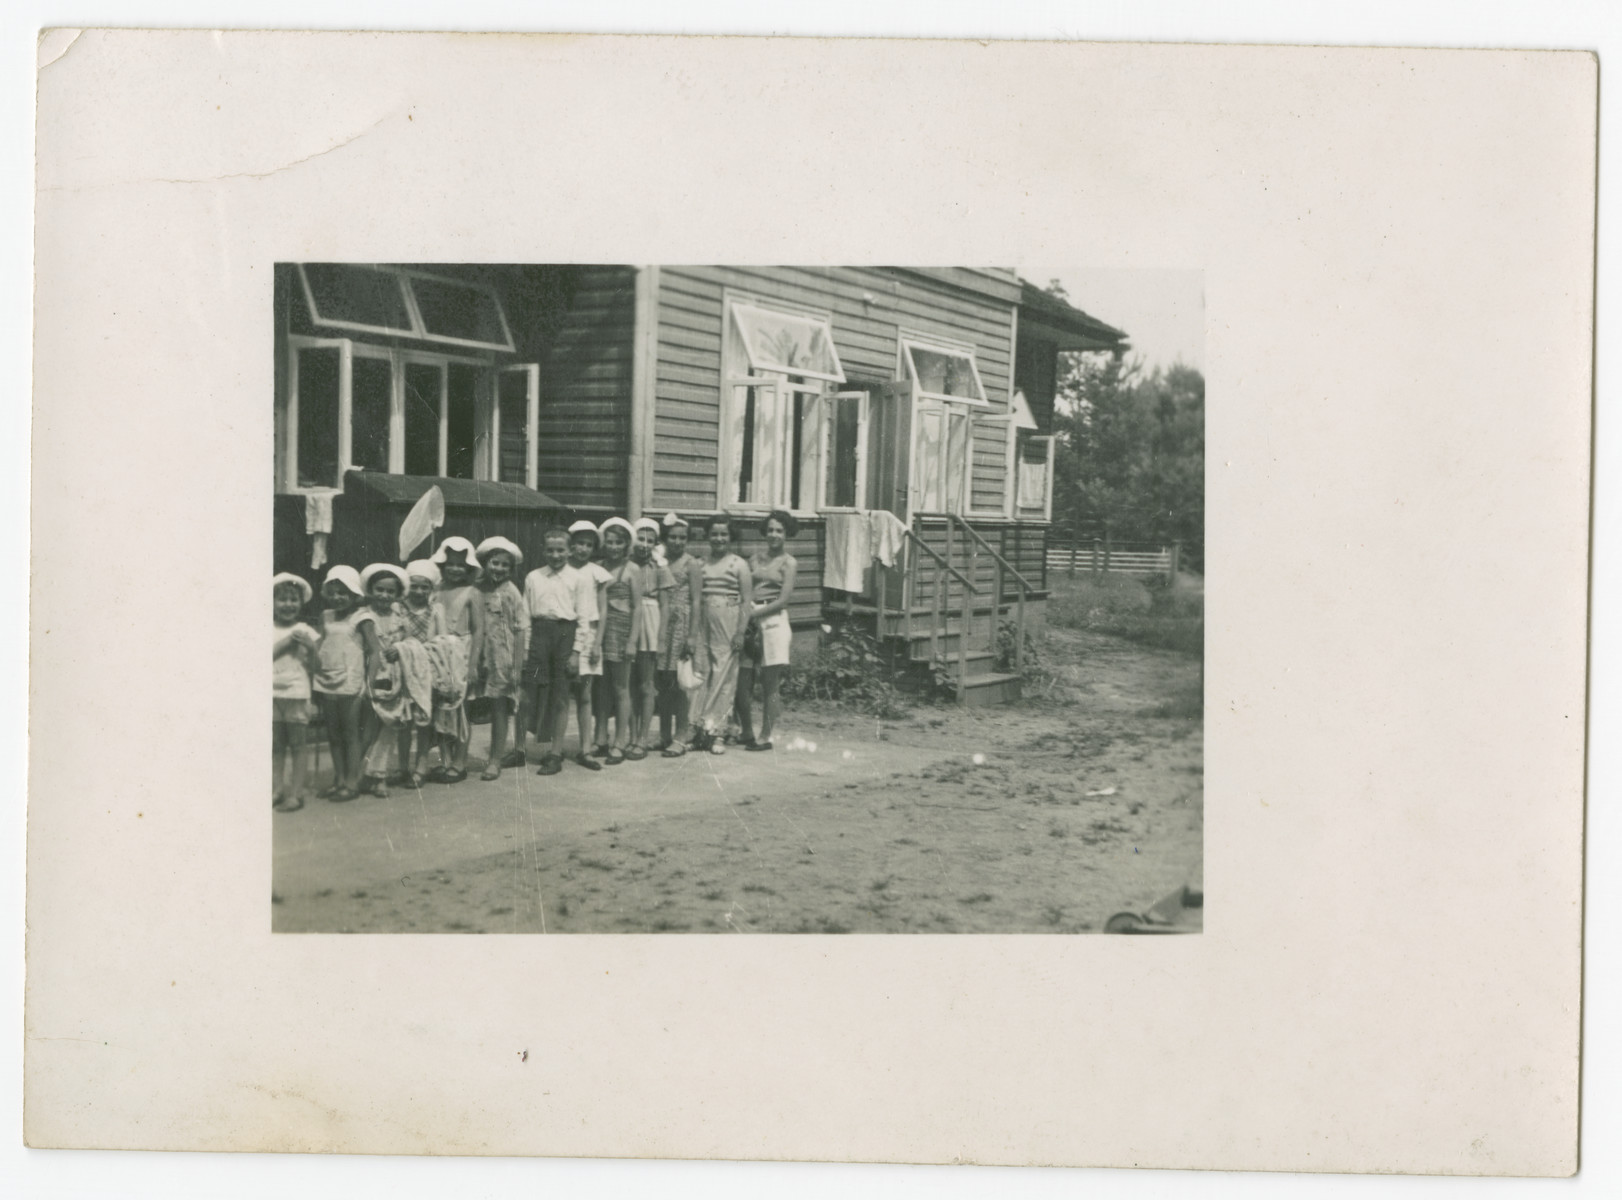 A group of school children line up outside a [school].